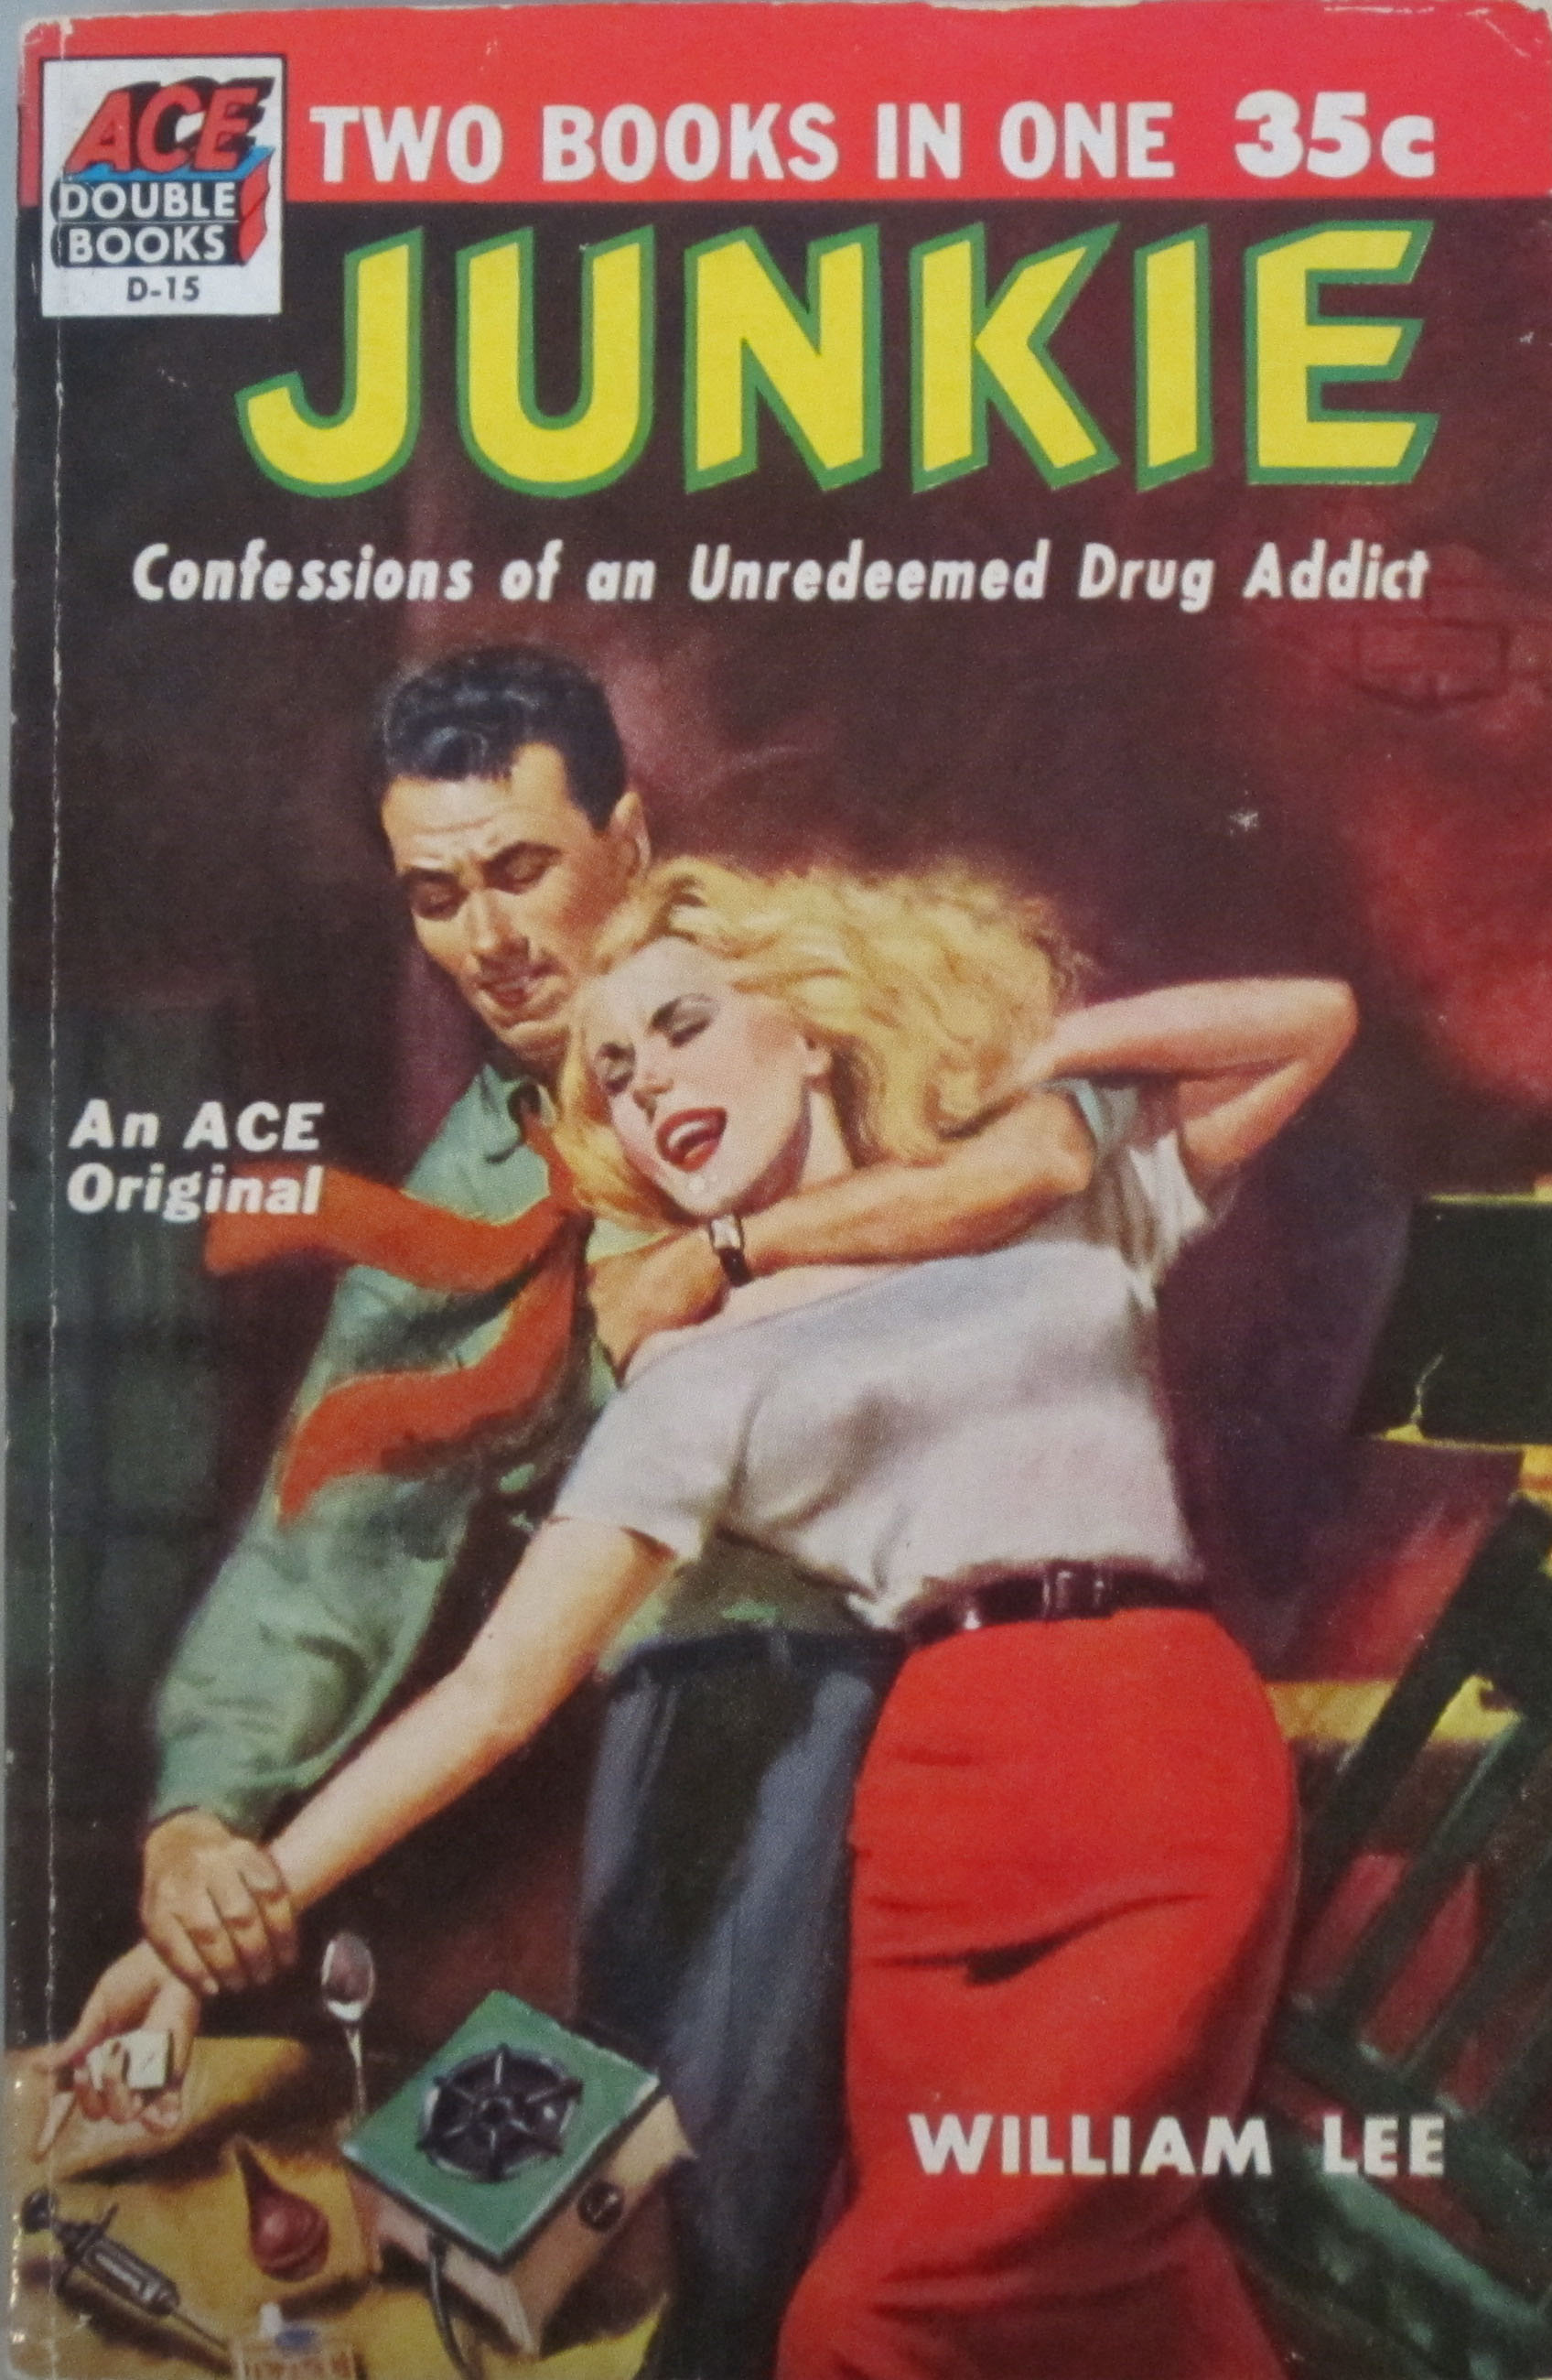 Cover of Junkie, published by ACE Double Books, 1953. (PS3552 .U75 J8 1953. Marvin Tatum Collection of Contemporary Literature. Photograph by Petrina Jackson )